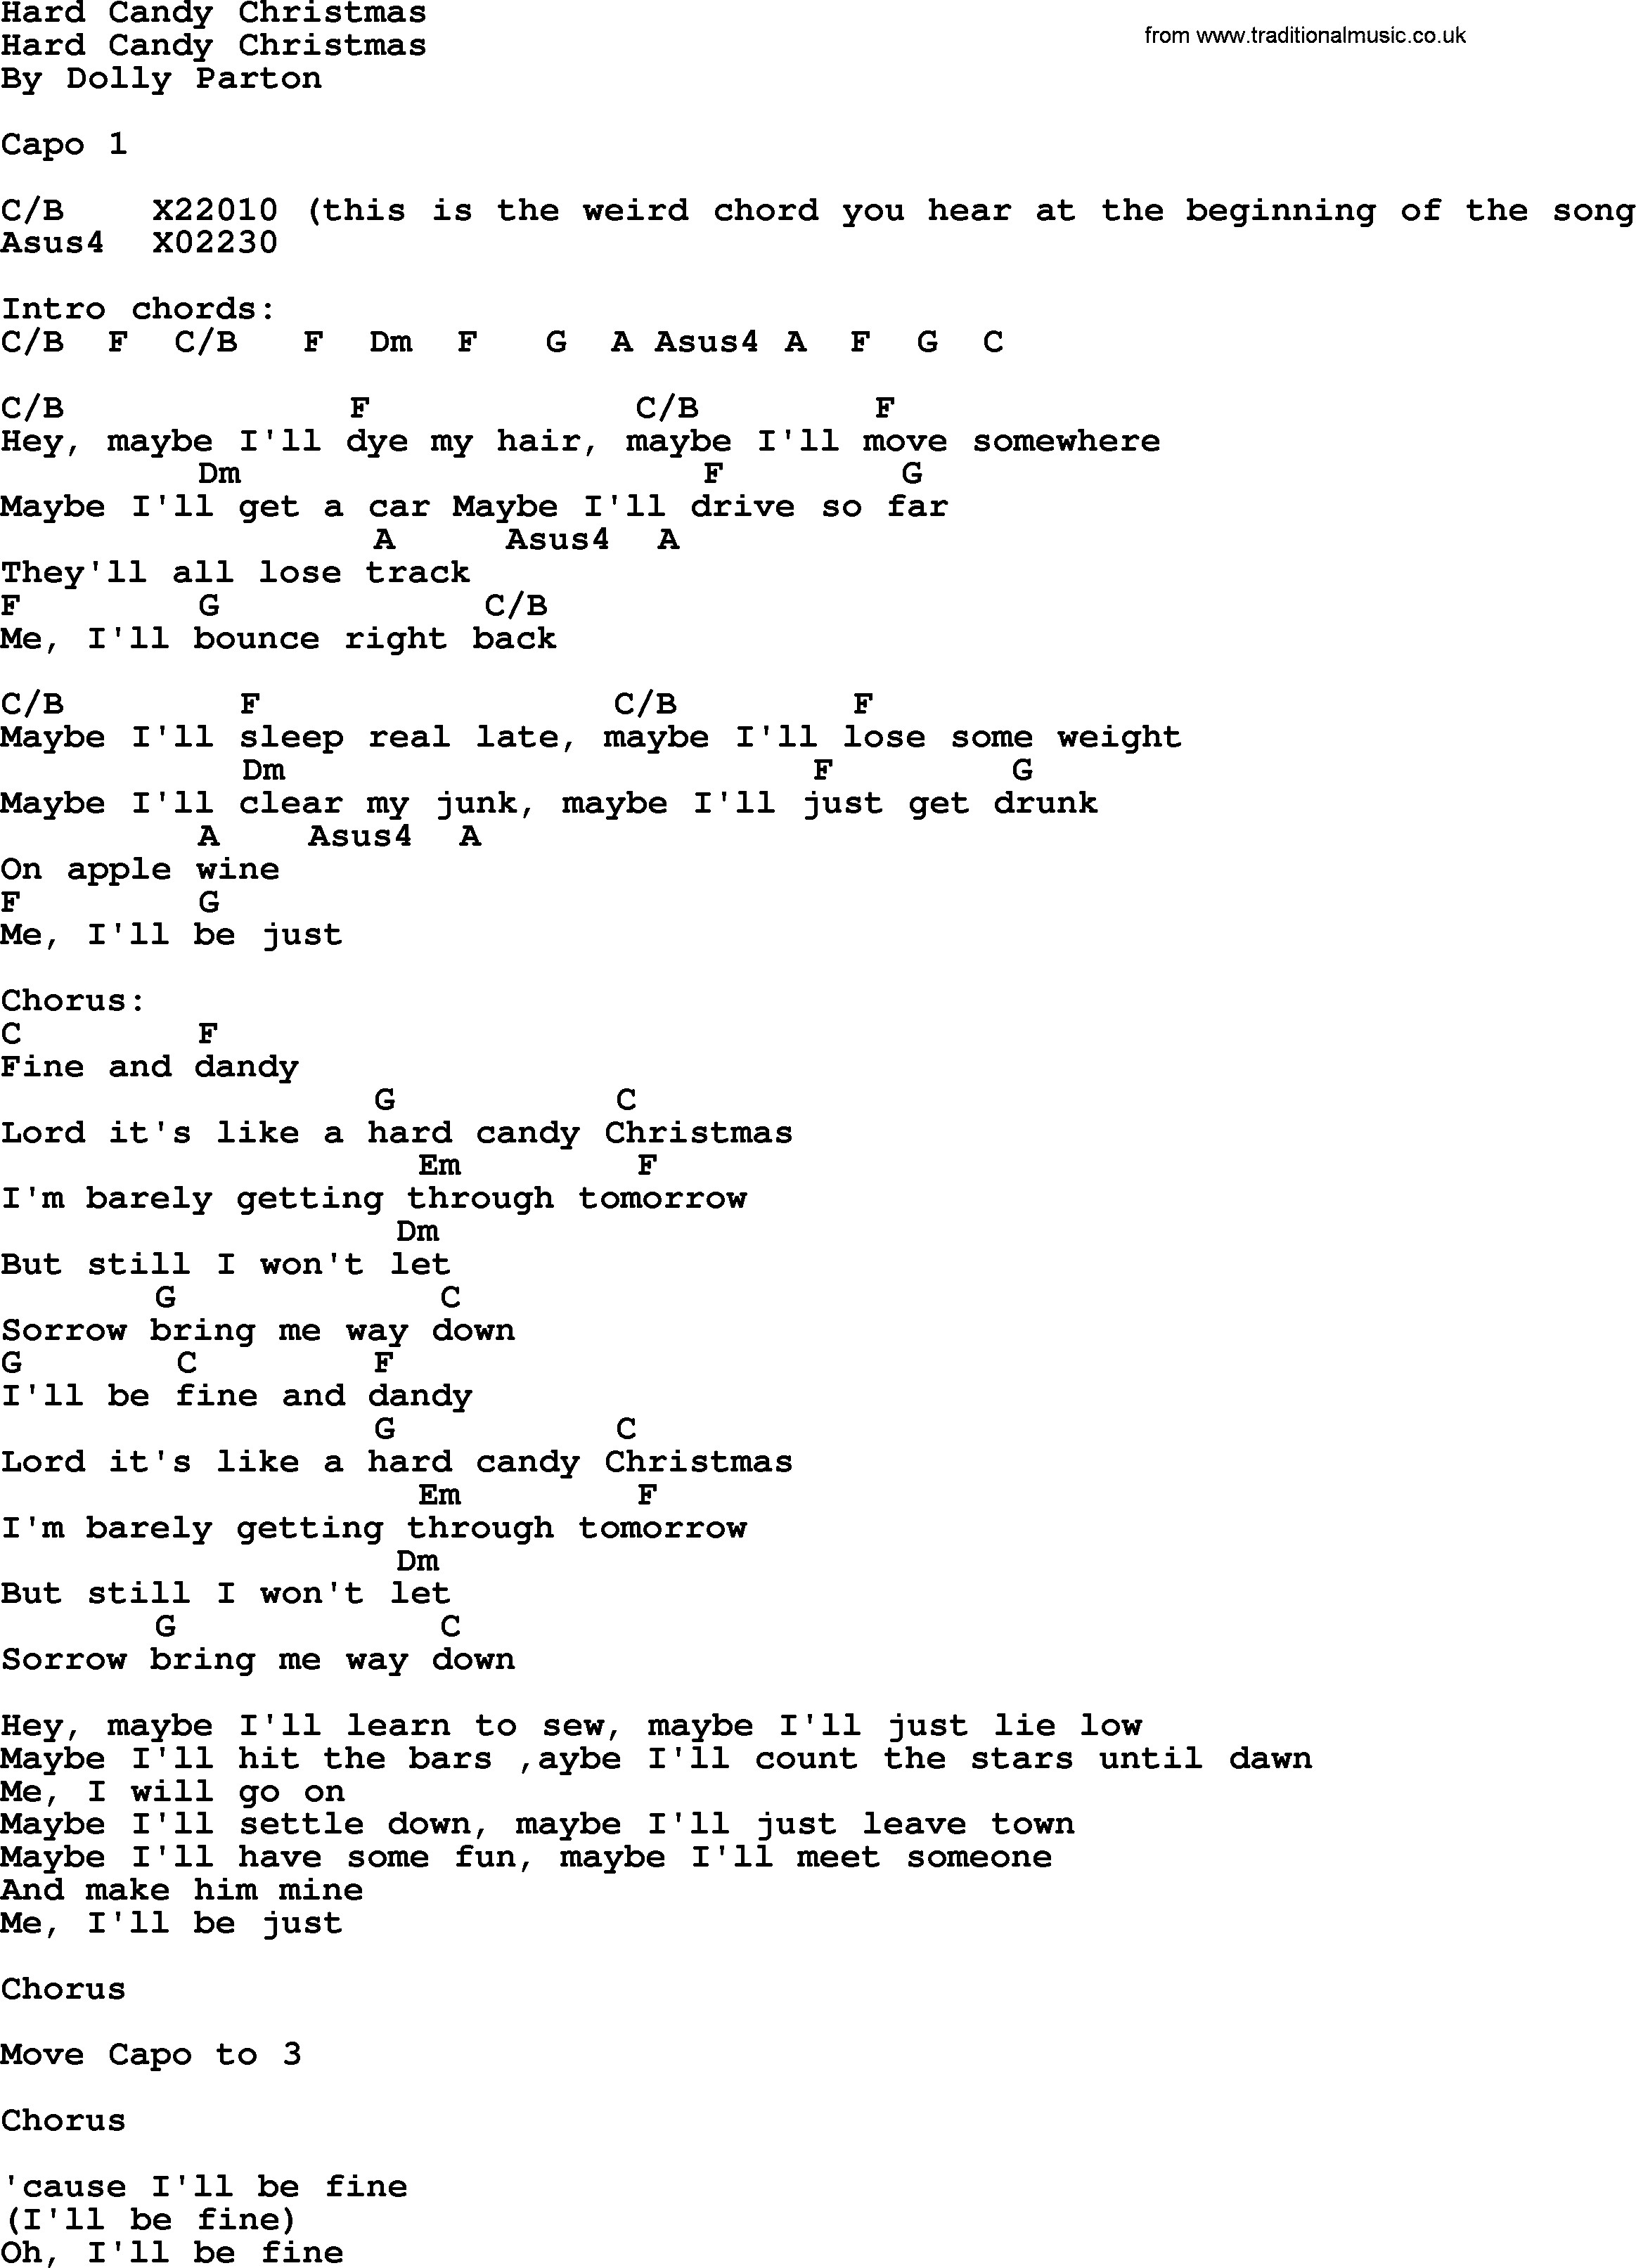 Lyrics Hard Candy Christmas  Hard Candy Christmas Bluegrass lyrics with chords